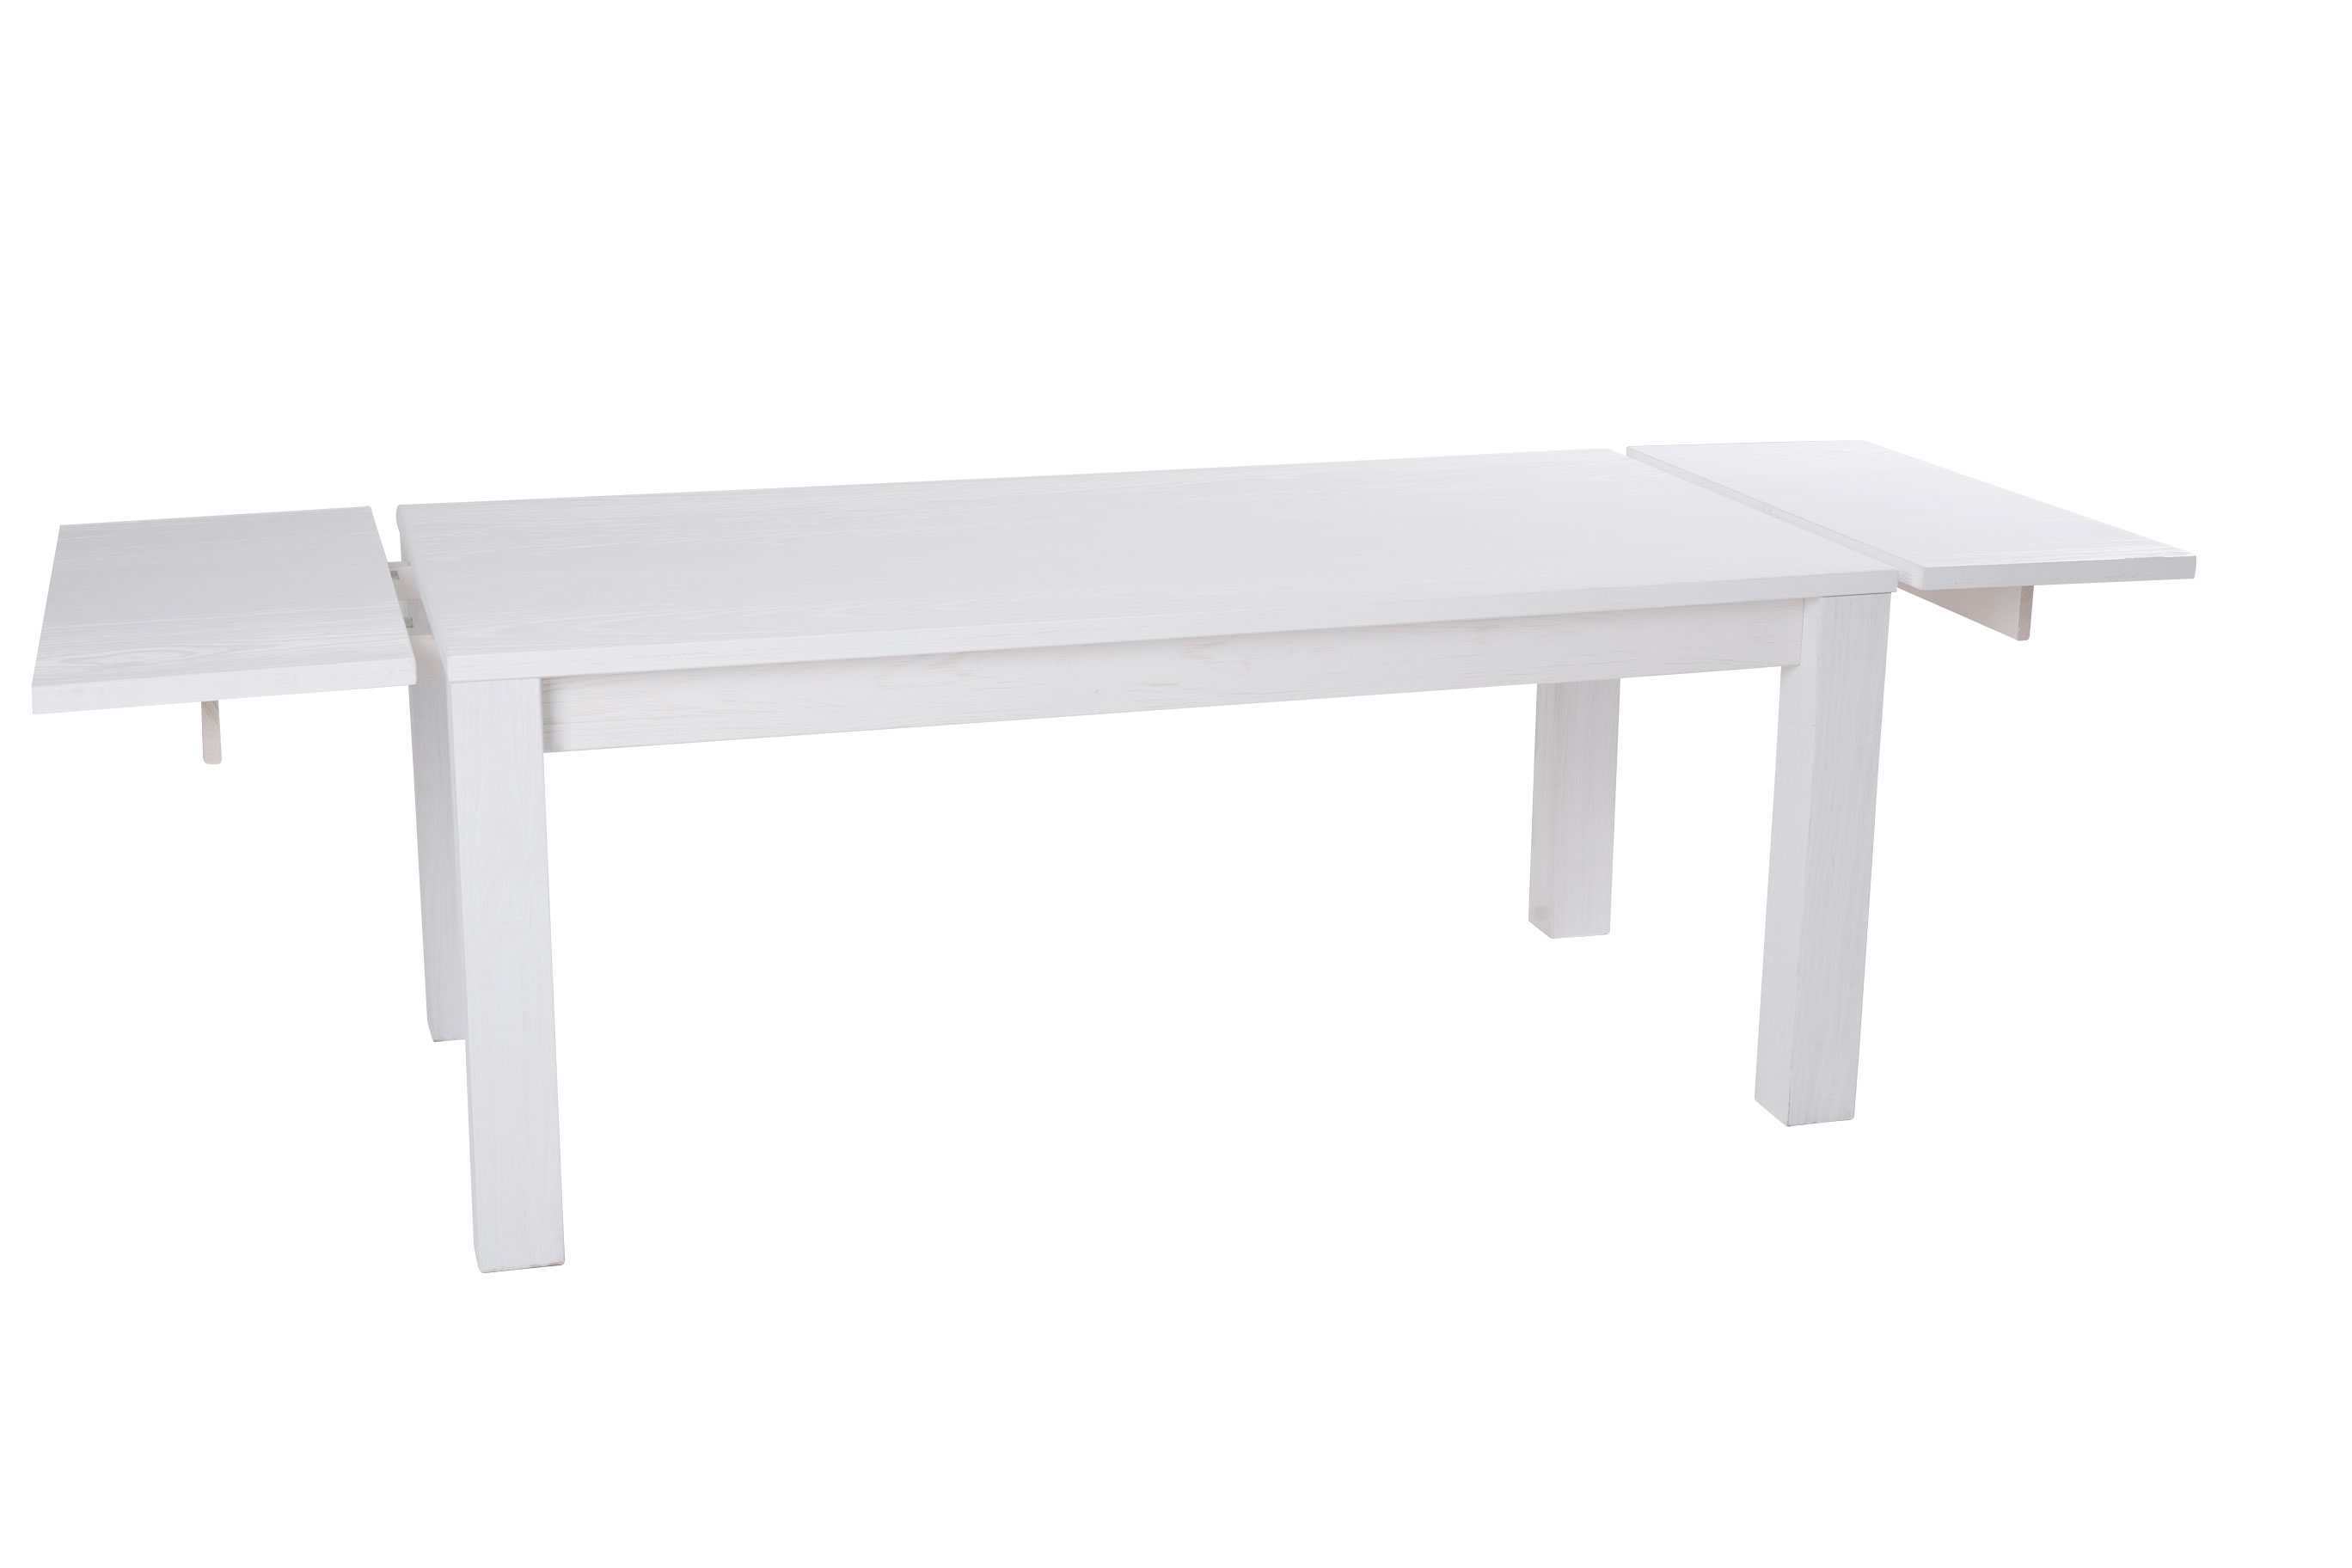 Table de s jour rectangulaire en pin massif laqu e blanc for Sejour rectangulaire